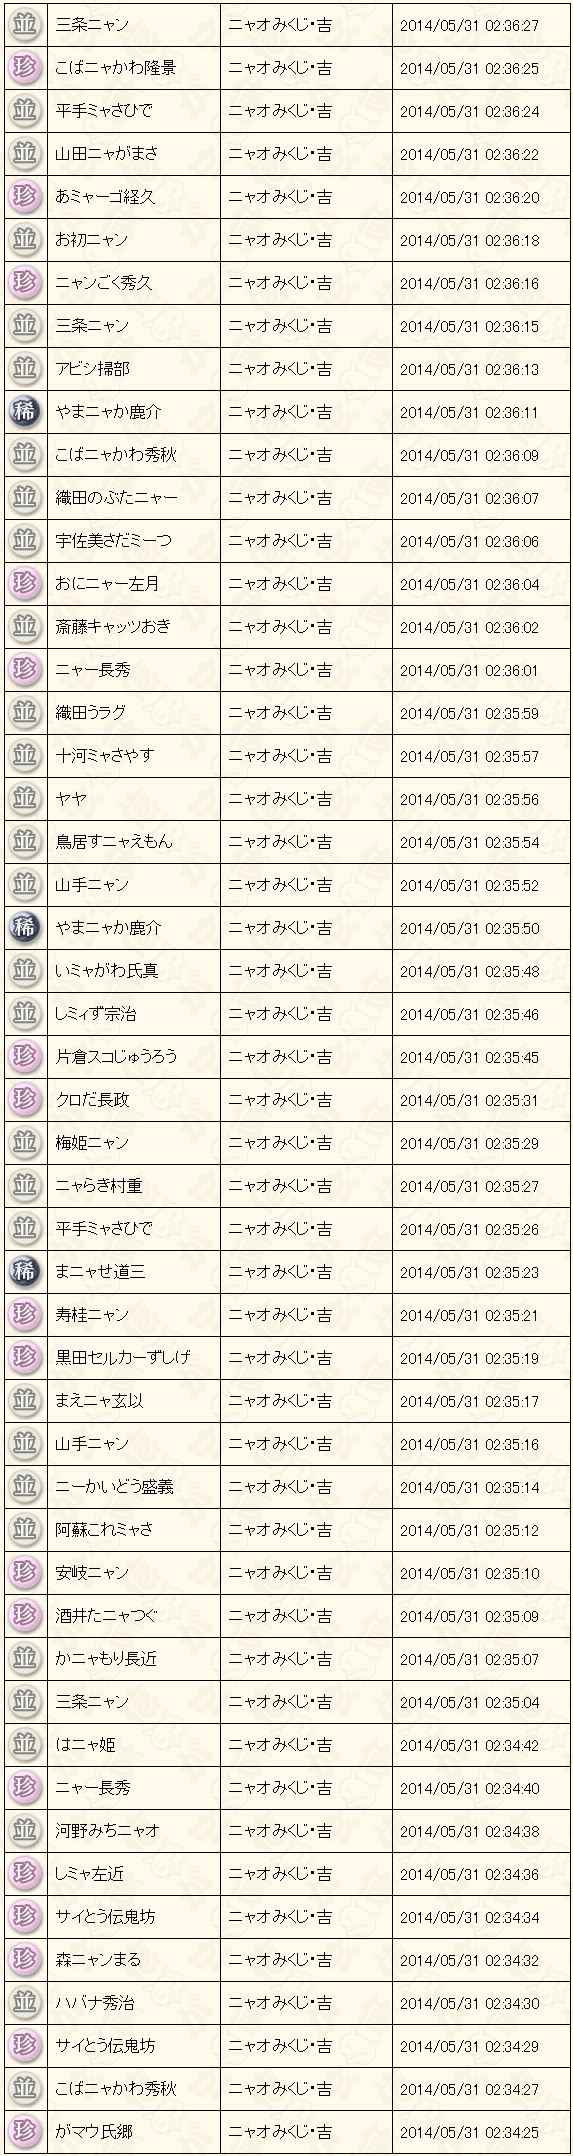 20140531024049159.png